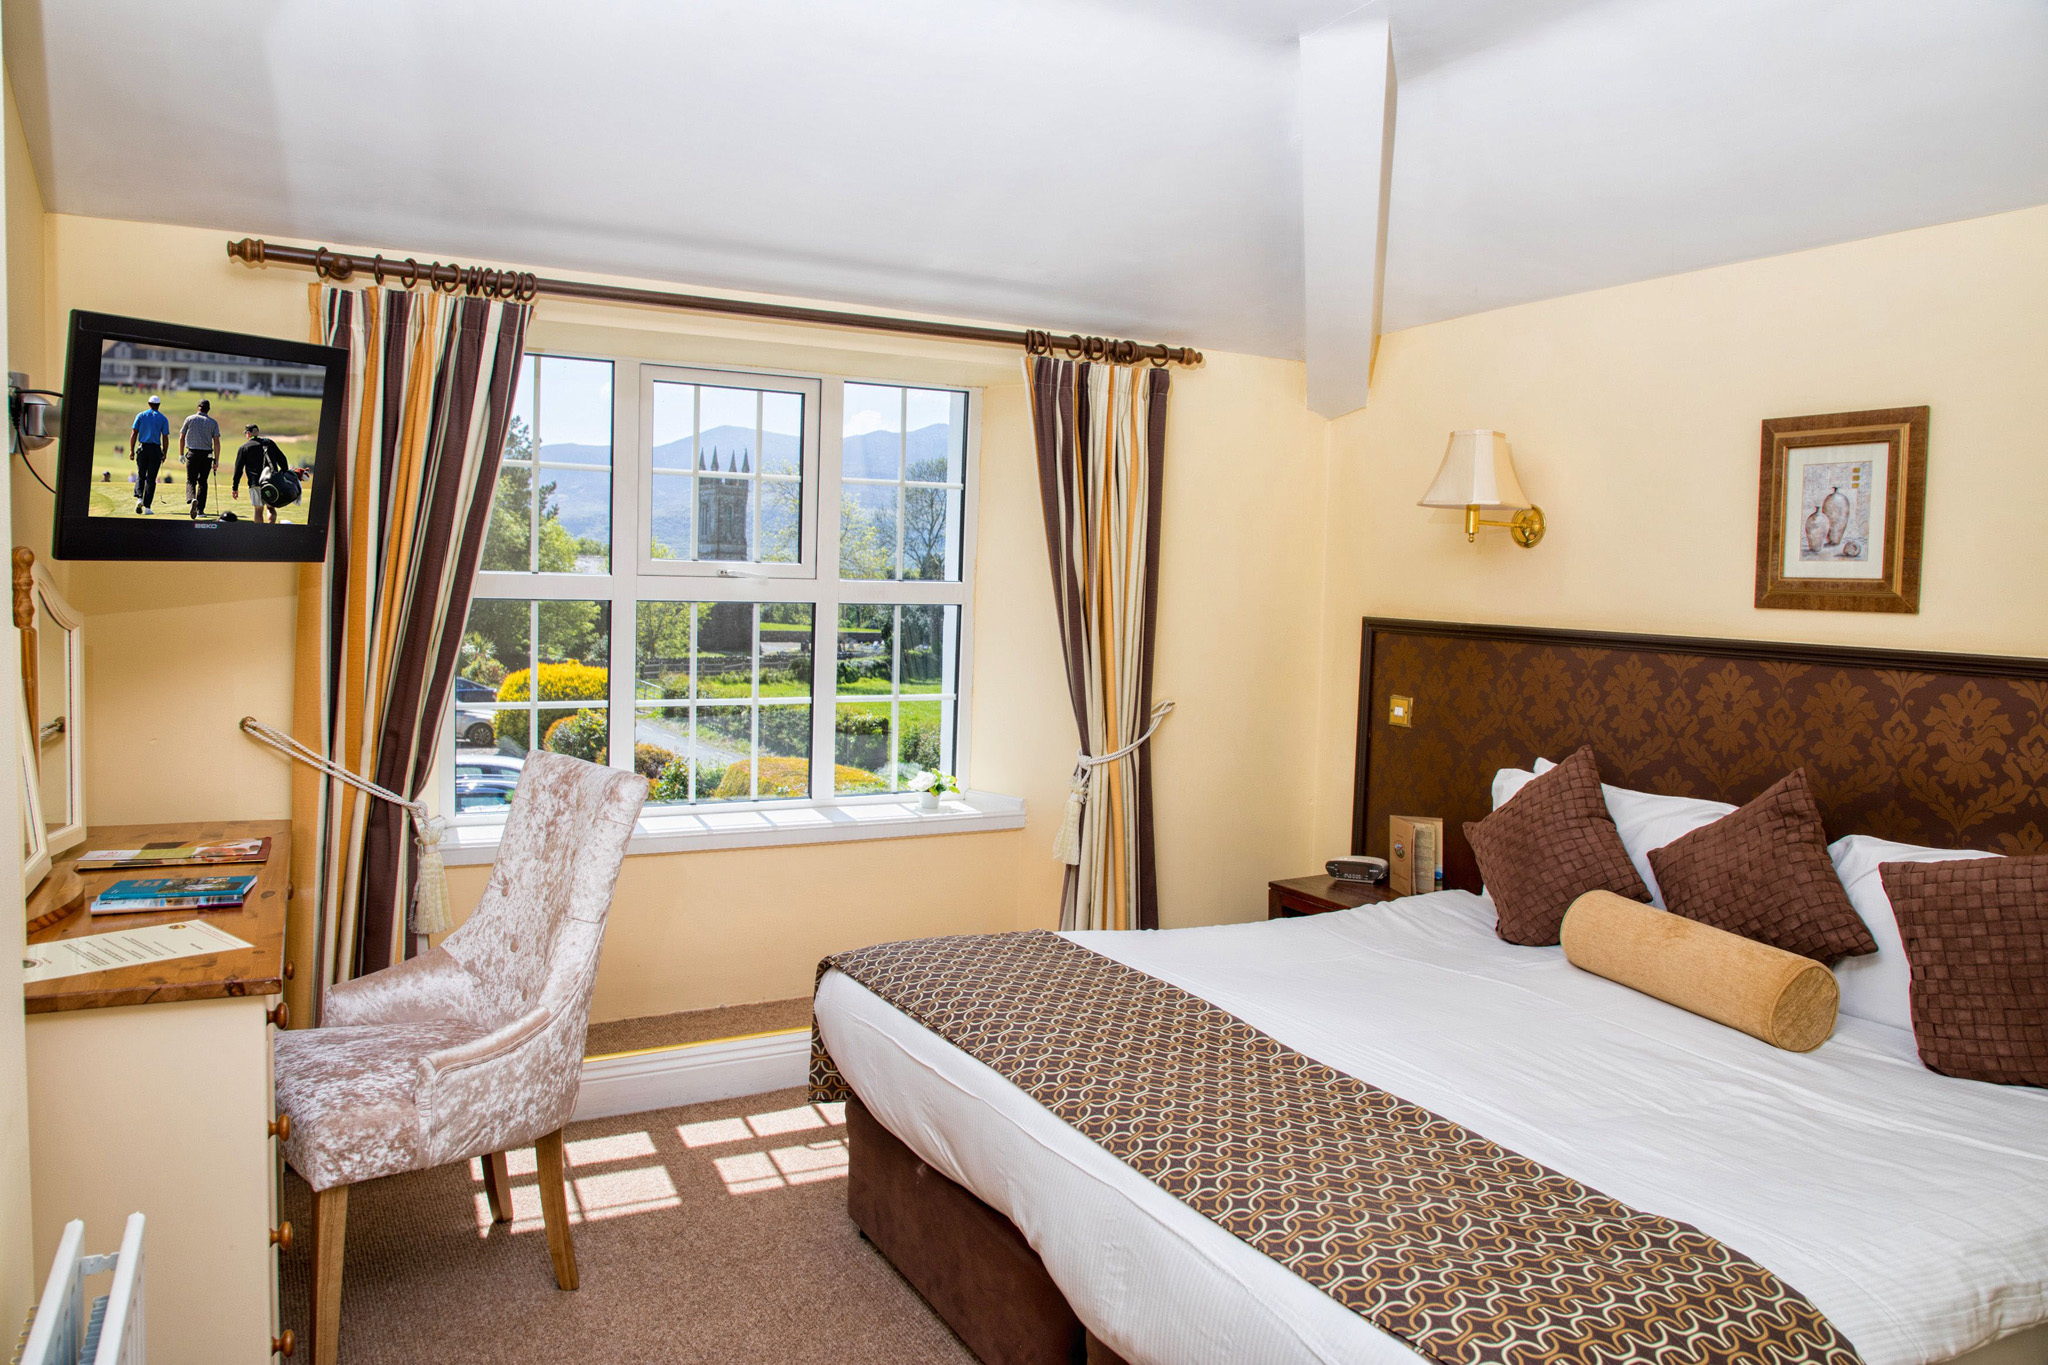 Killeen House Hotel | Aghadoe , Lakes of Killarney, Co Kerry | Photos 24